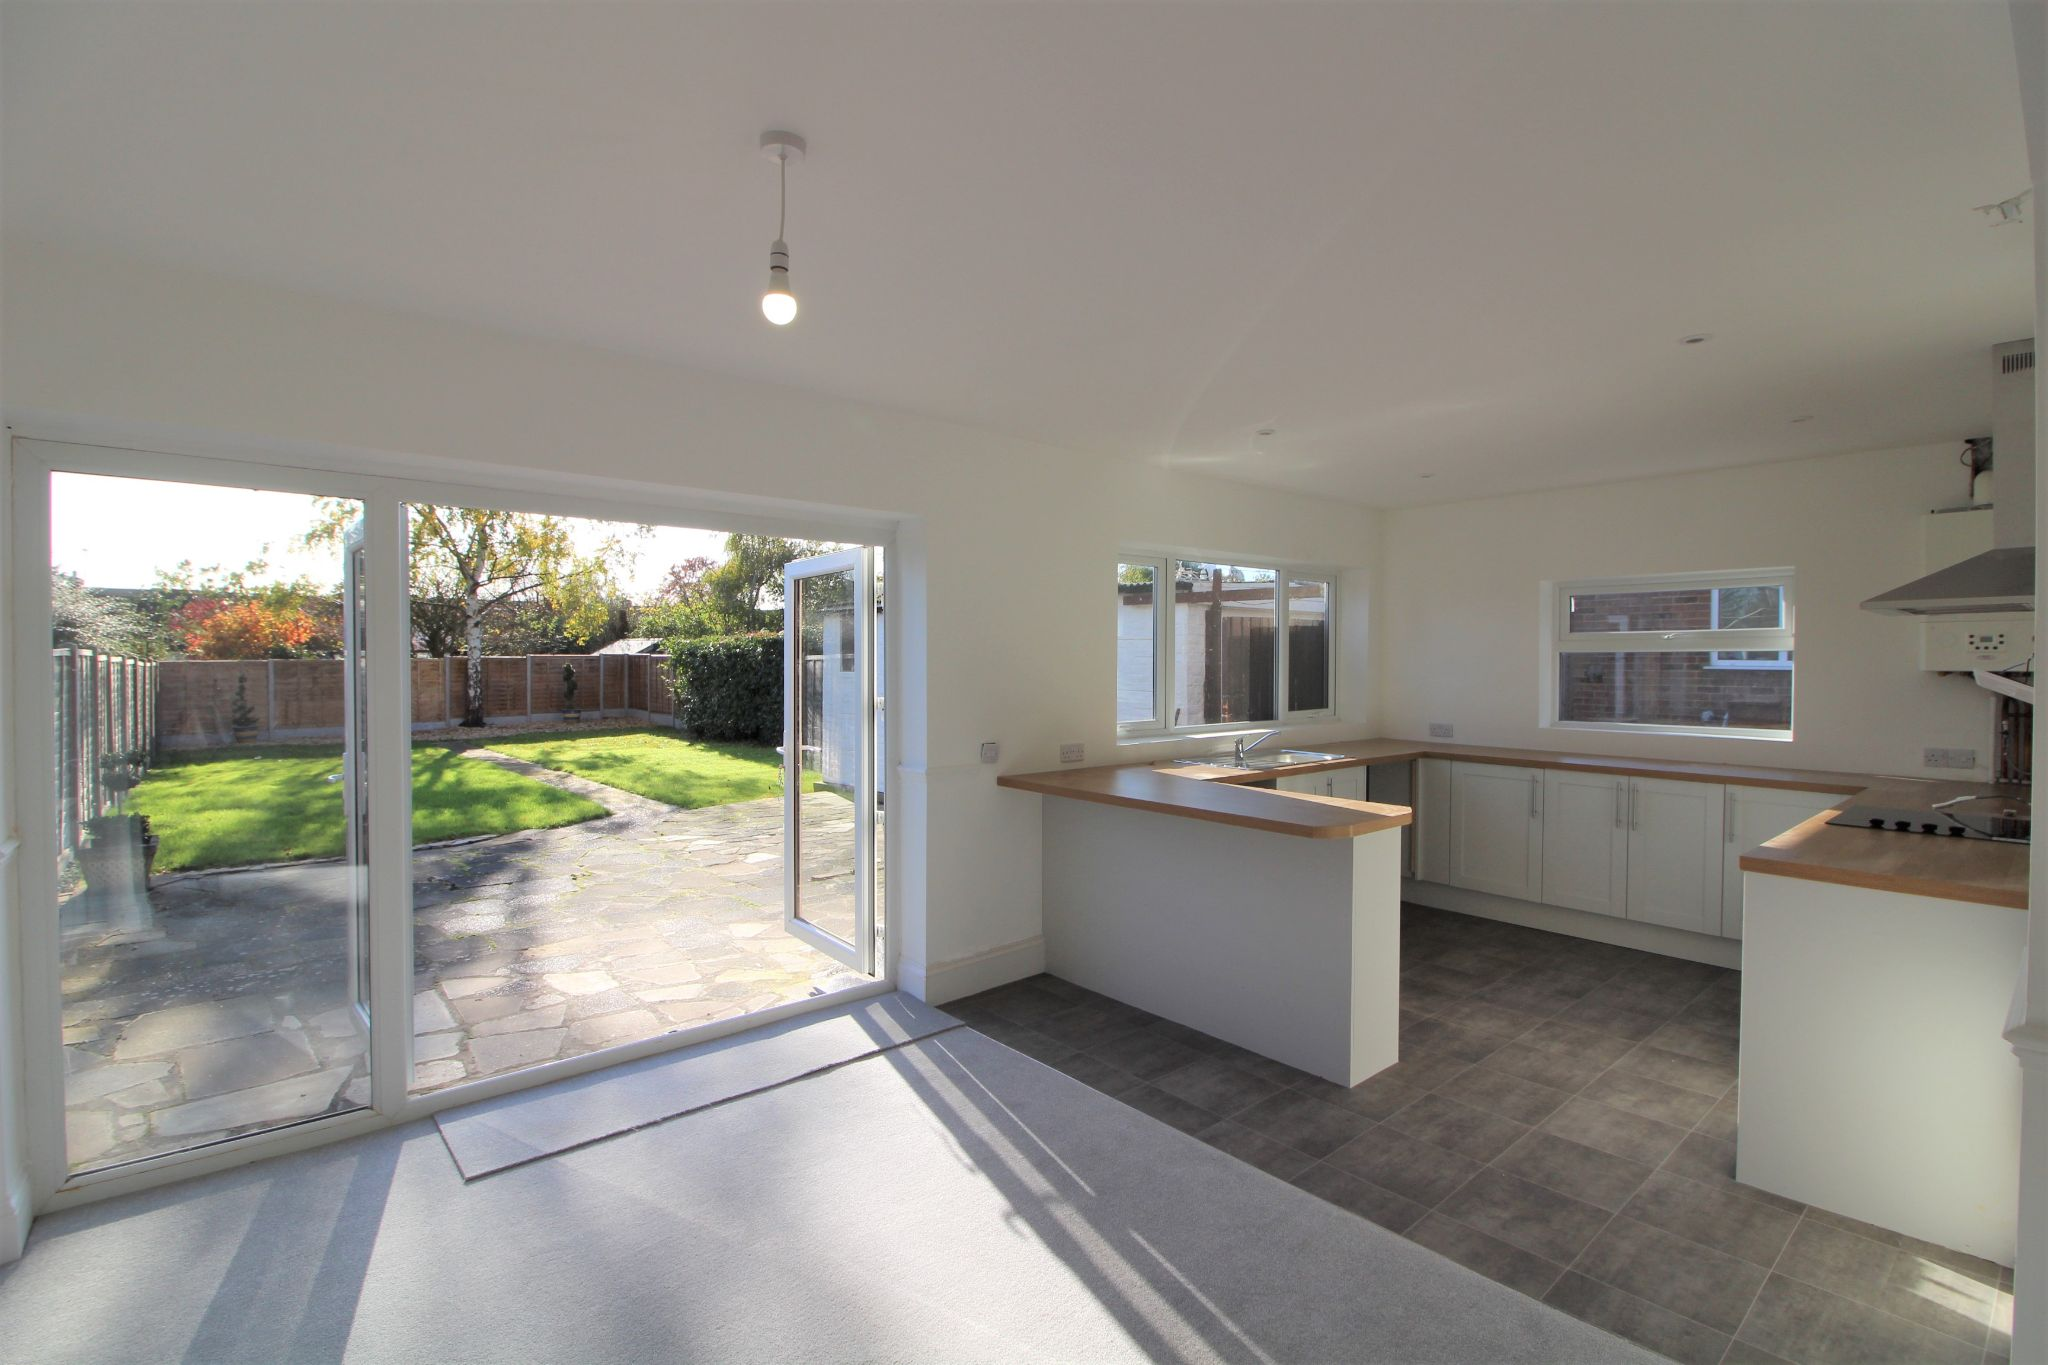 4 bedroom semi-detached bungalow For Sale in Welham Green - Property photograph